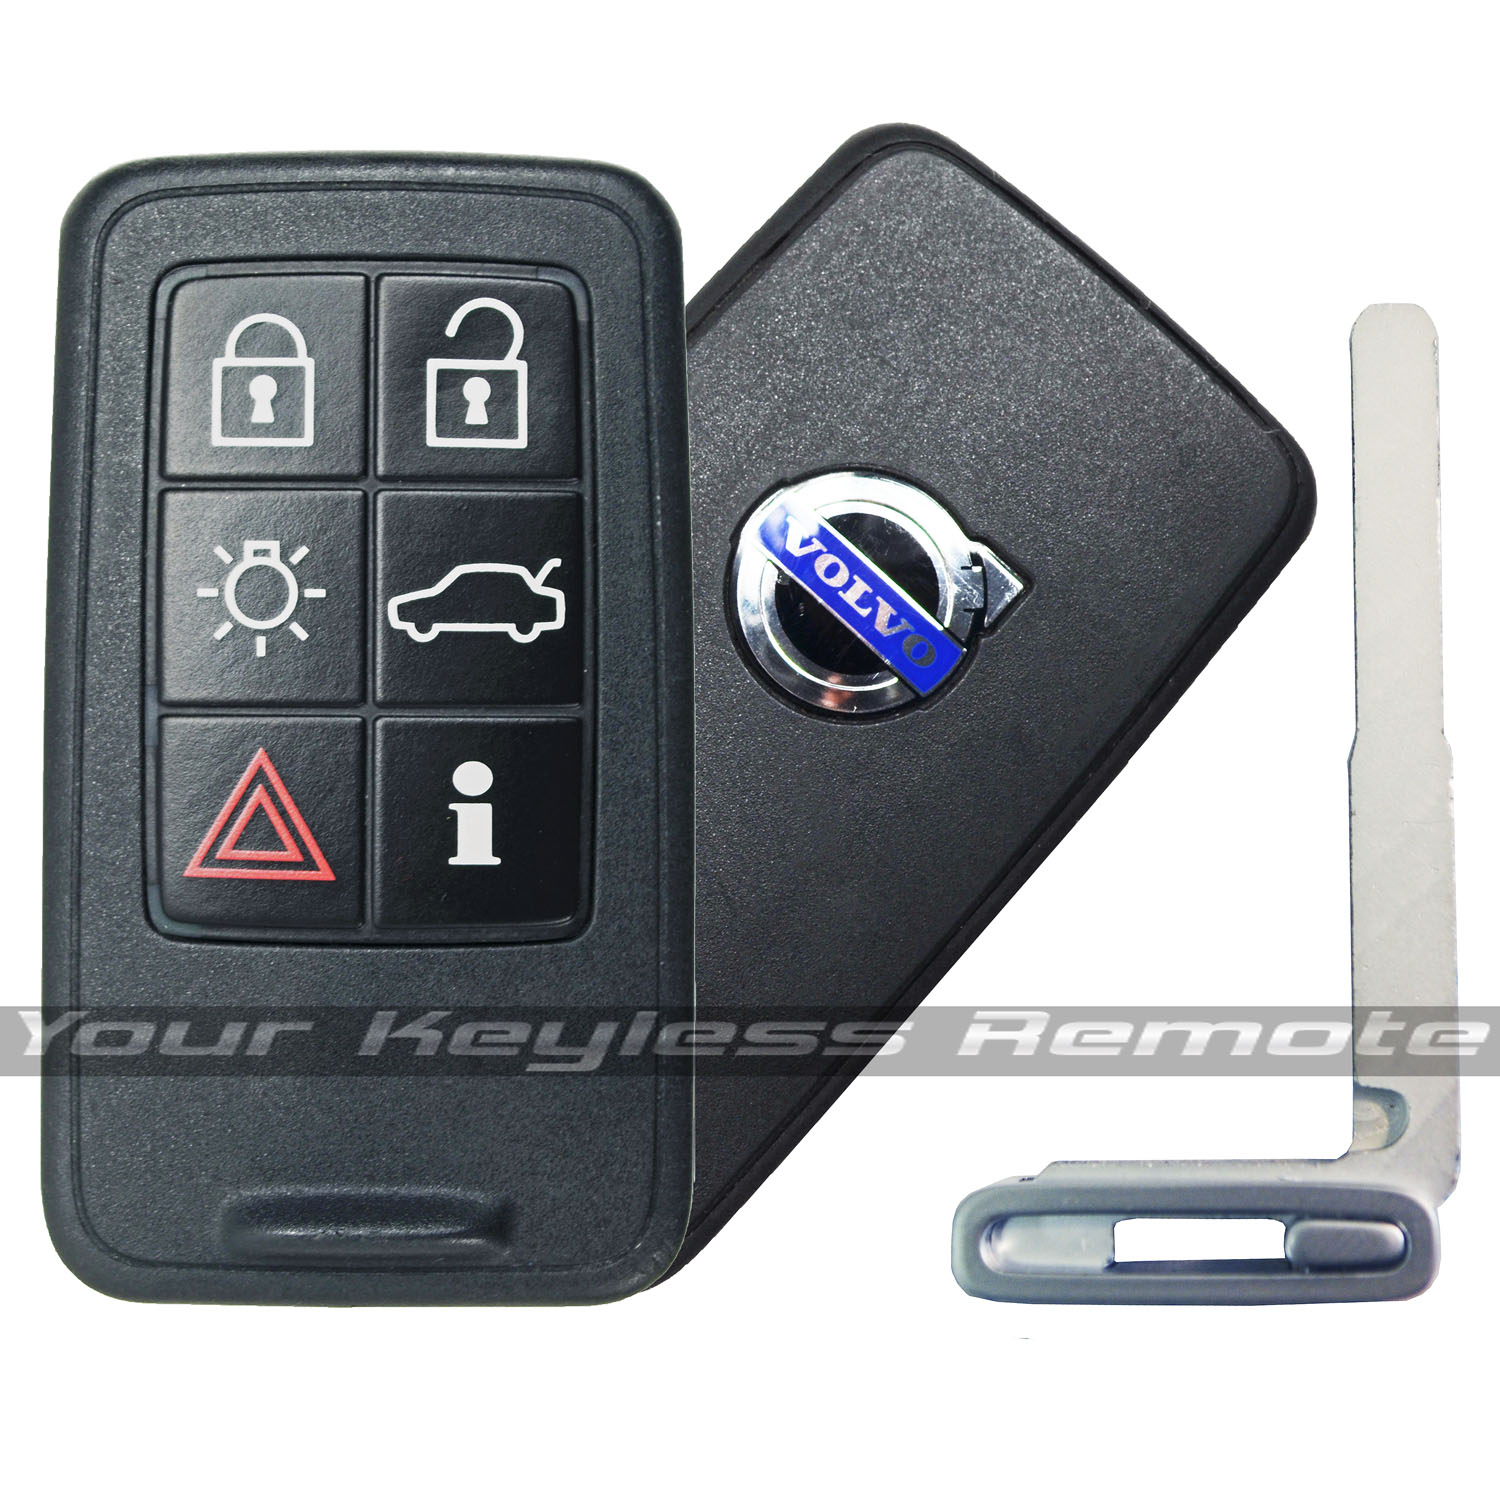 autokeymall key volvo auto productview buttons lock system smart